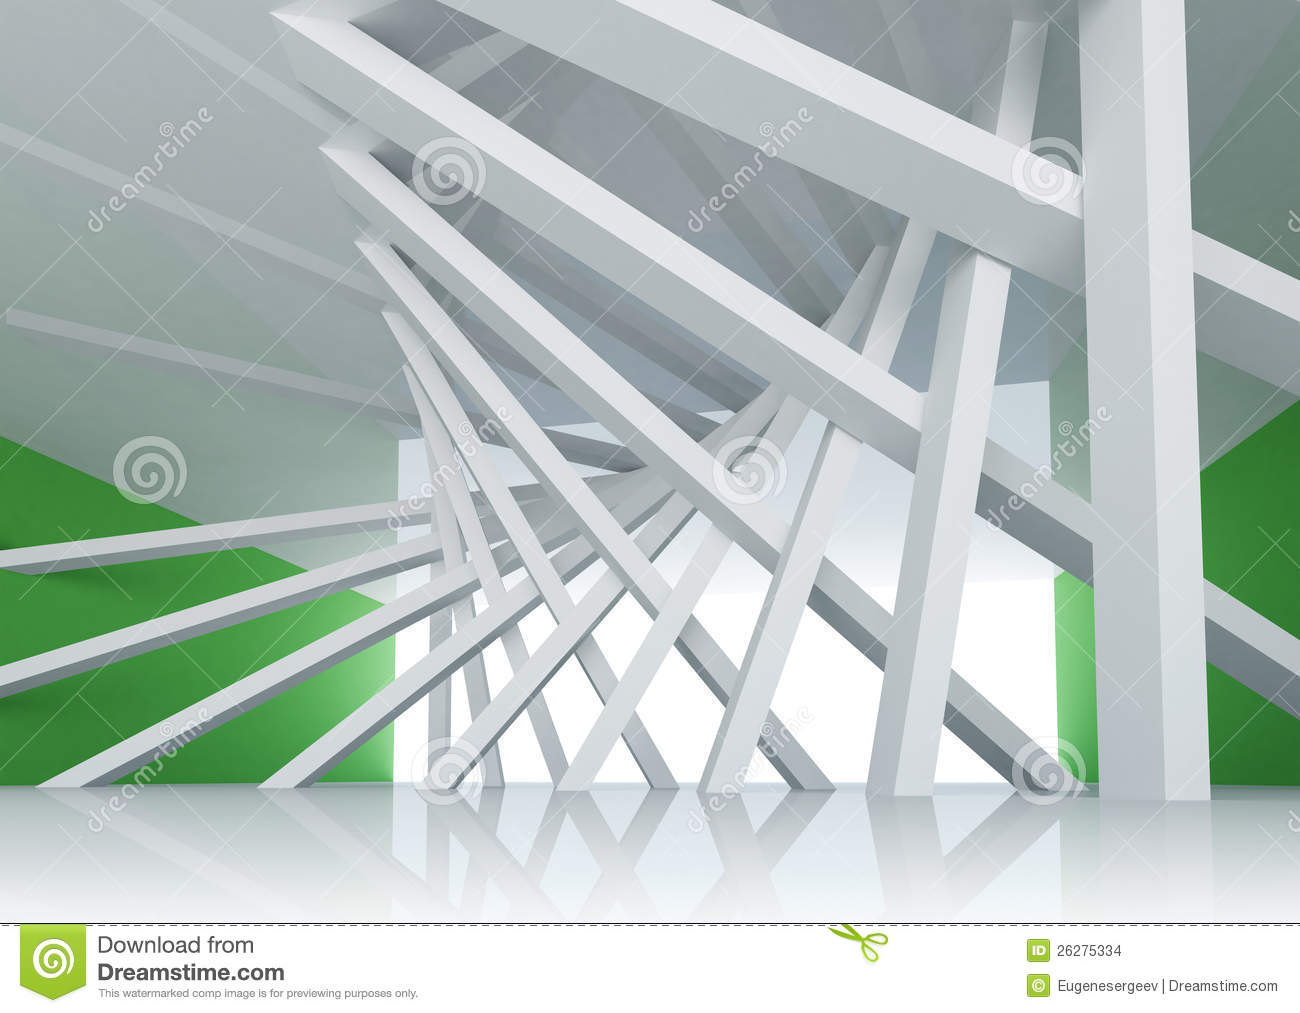 Abstrak Wallpaper Hd 3d Abstract Architecture Background Room Interior Stock